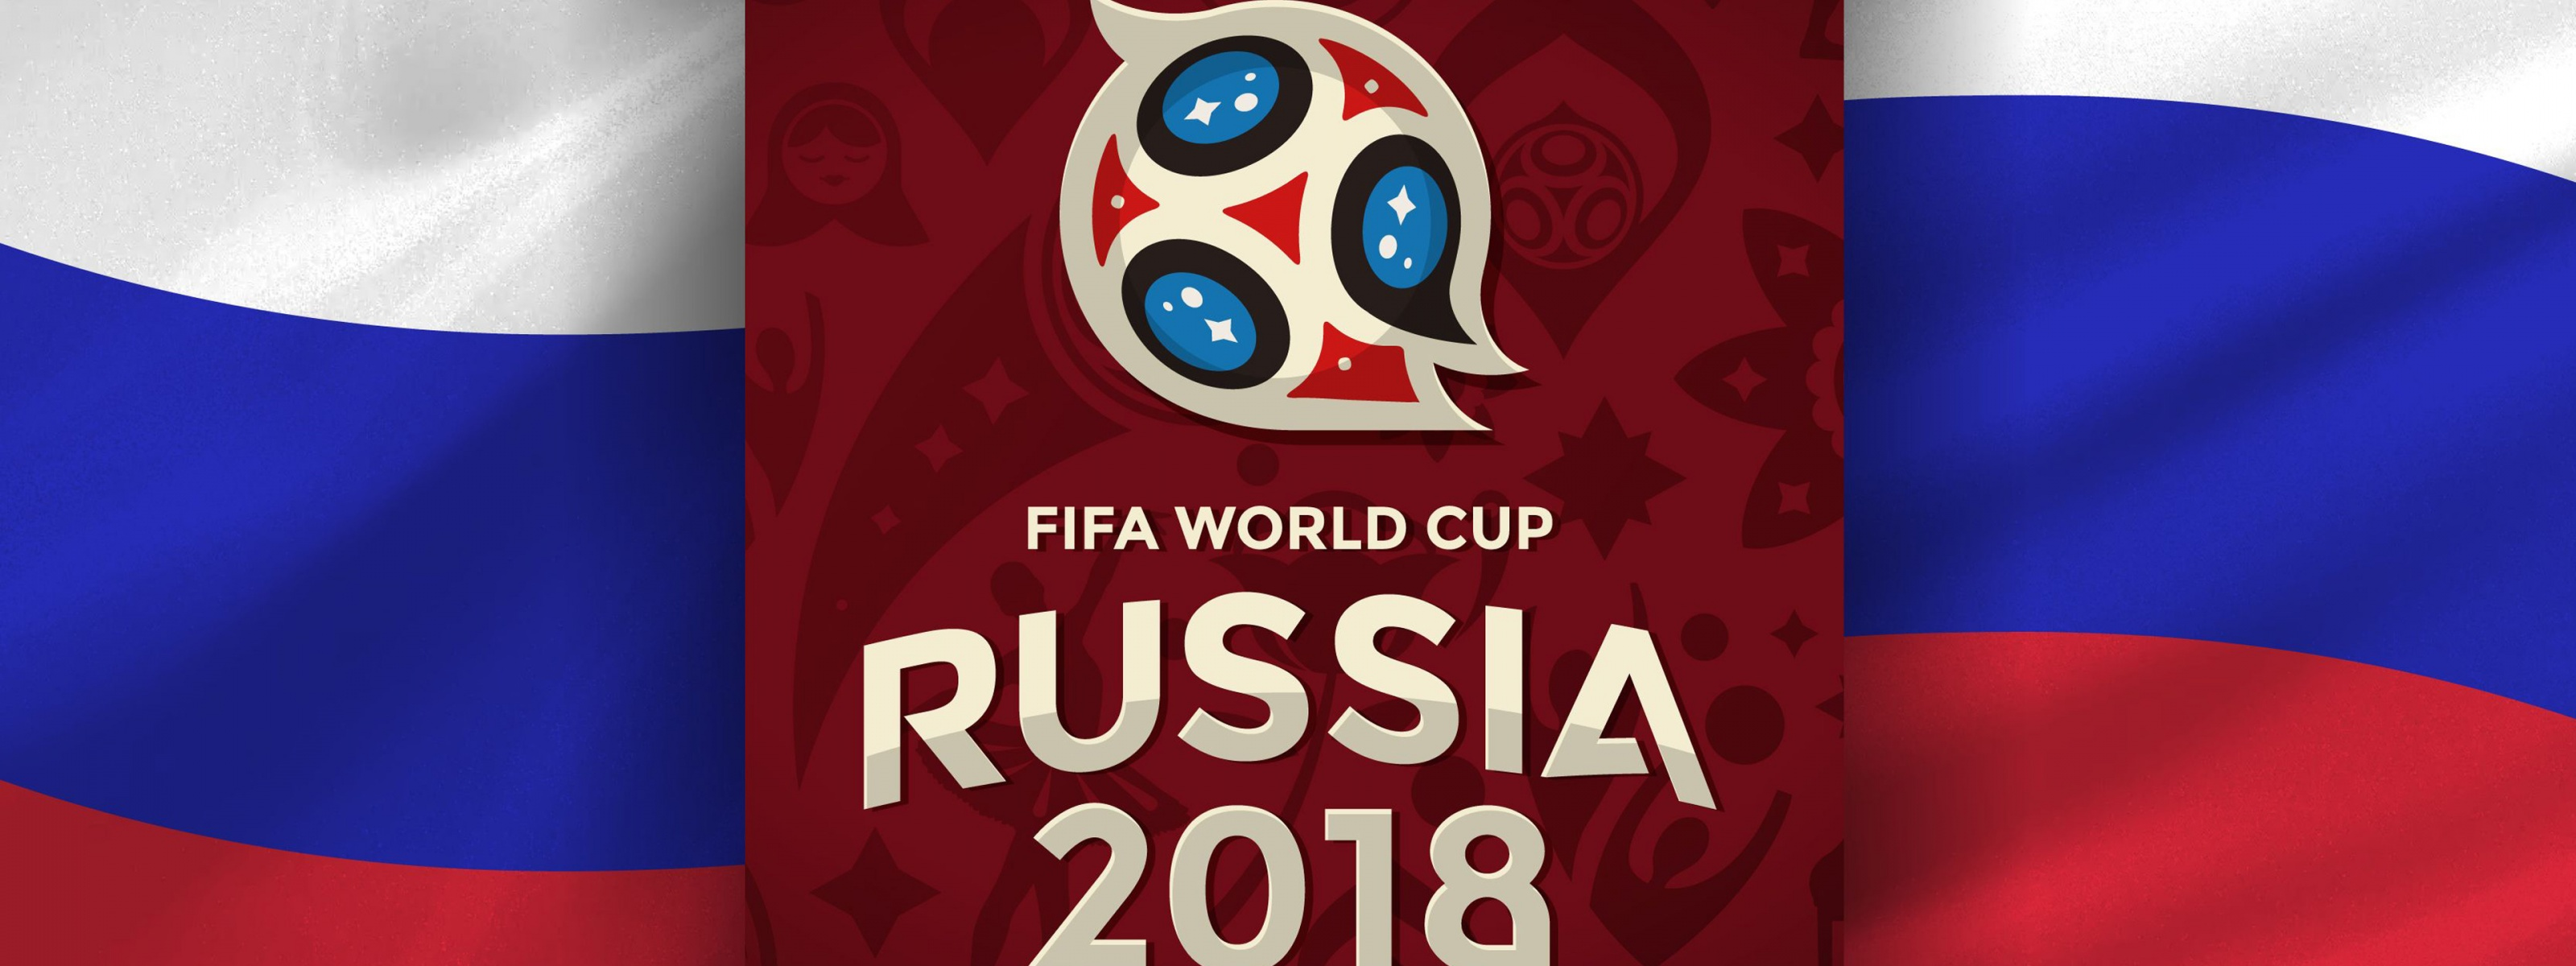 Fifa World Cup 2018 Russia